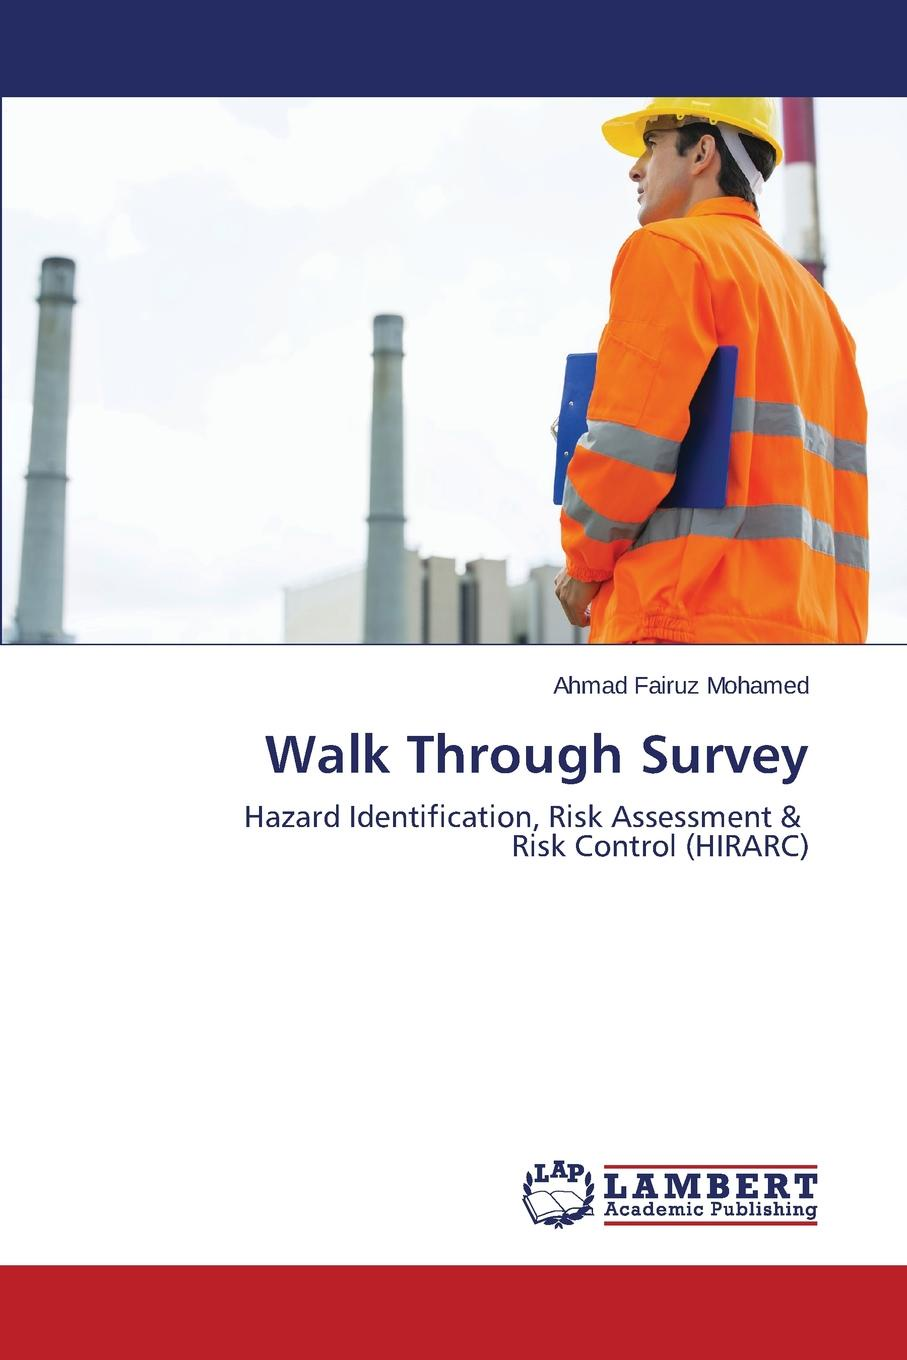 Mohamed Ahmad Fairuz Walk Through Survey